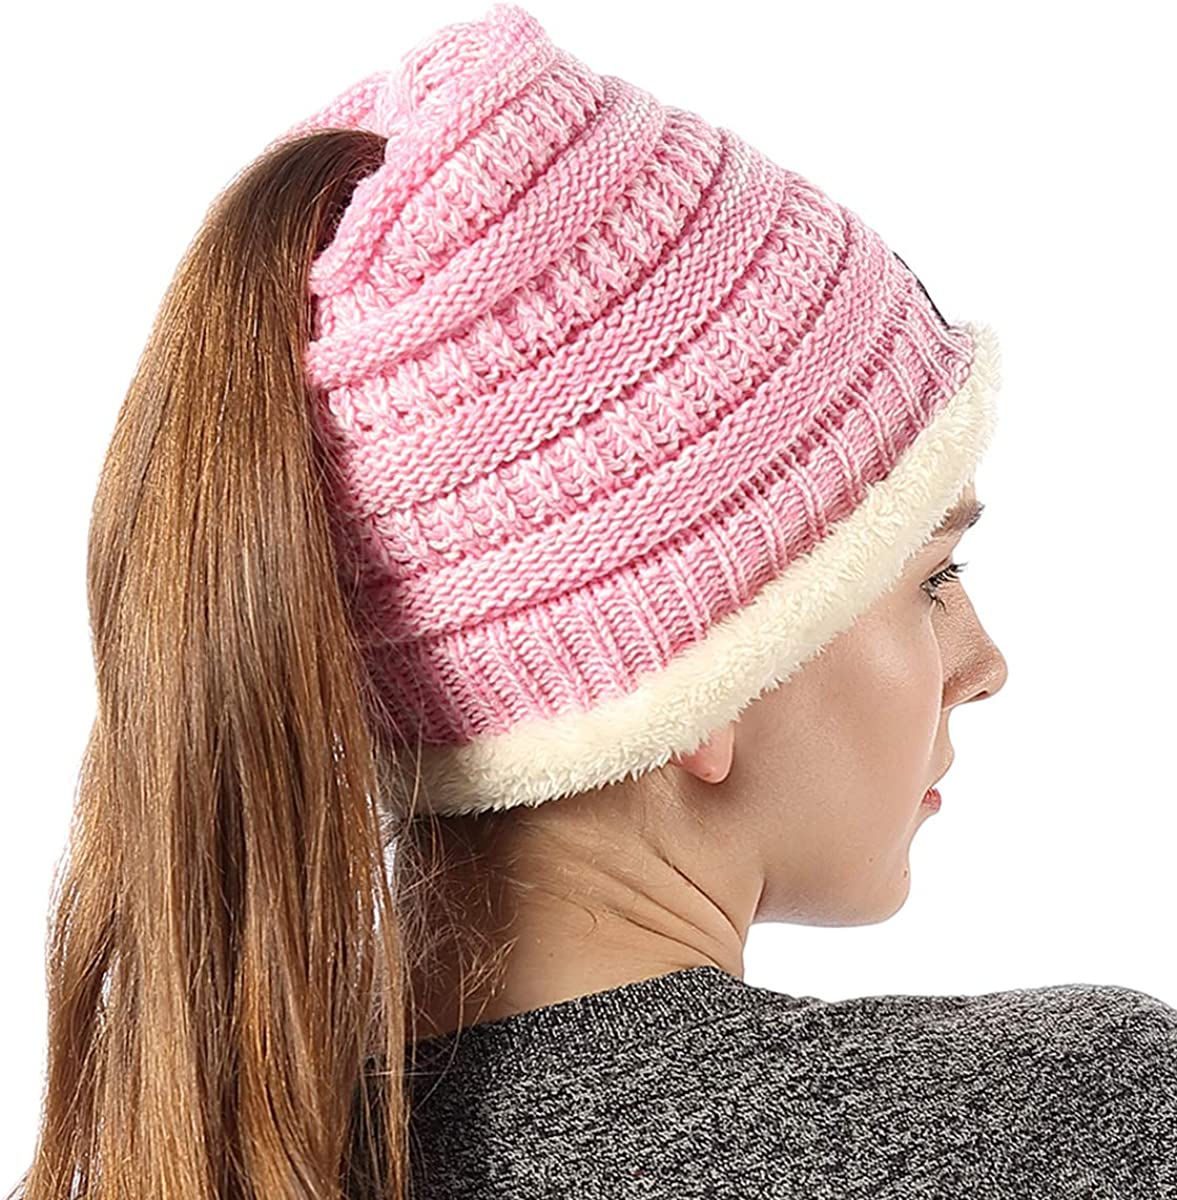 18 Colors Womens Ponytail Beanie Hats Warm Fuzzy Lined Soft Stretch Cable Knit Messy High Bun Cap